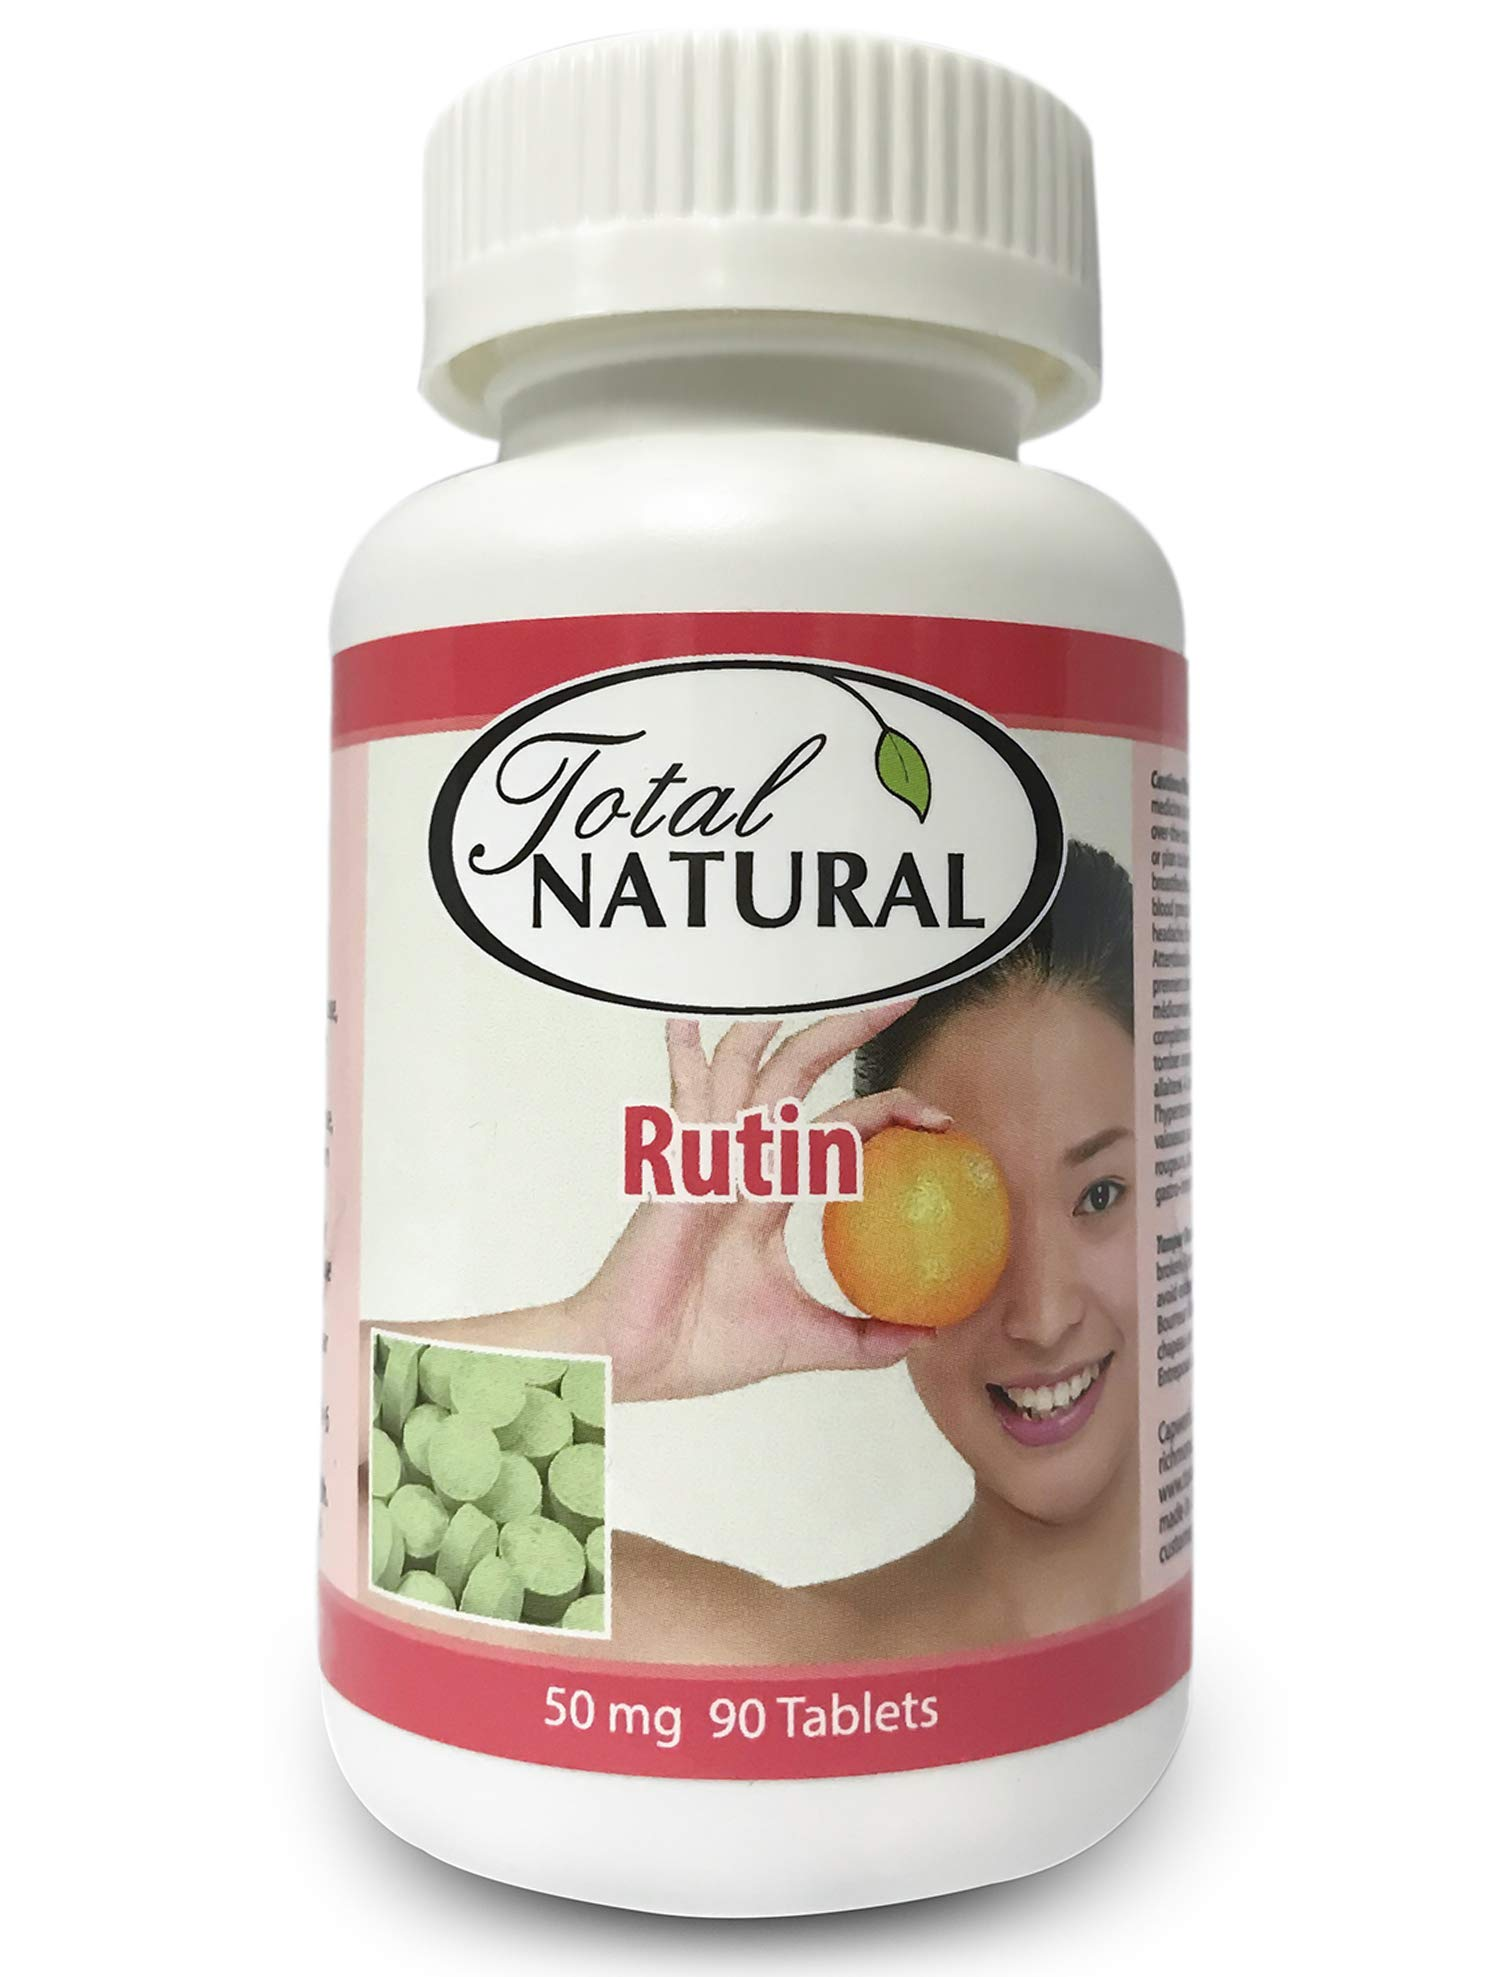 Rutin 50mg 90 Tablets [1 Bottle] by Total Natural, Anti-inflammatory, Help Absorb and Utilize Vitamin C, Improved Vascular Health, Vision Care